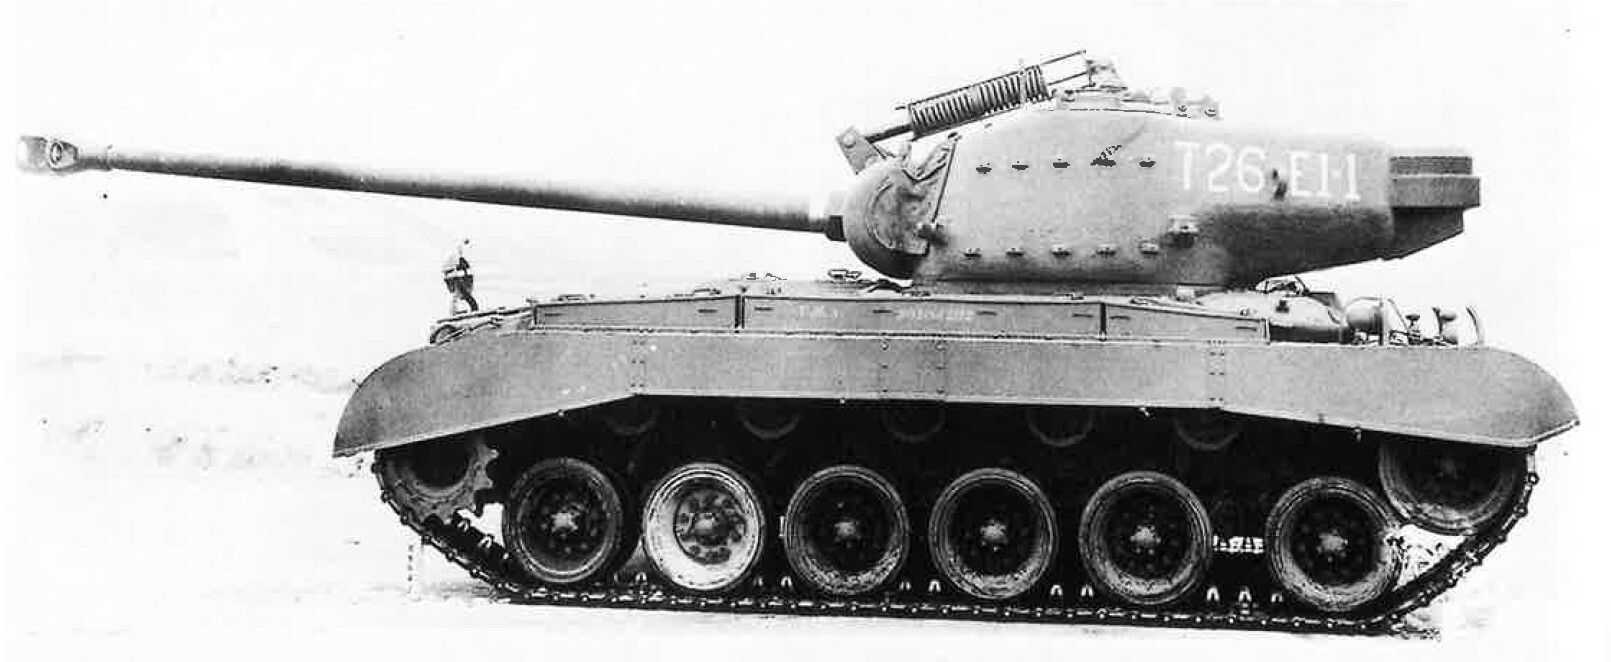 This T26E4 prototype was based on a T26E1 vehicle. The old designation can still be seen on the turret. Here seen at the Aberdeen Proving Ground